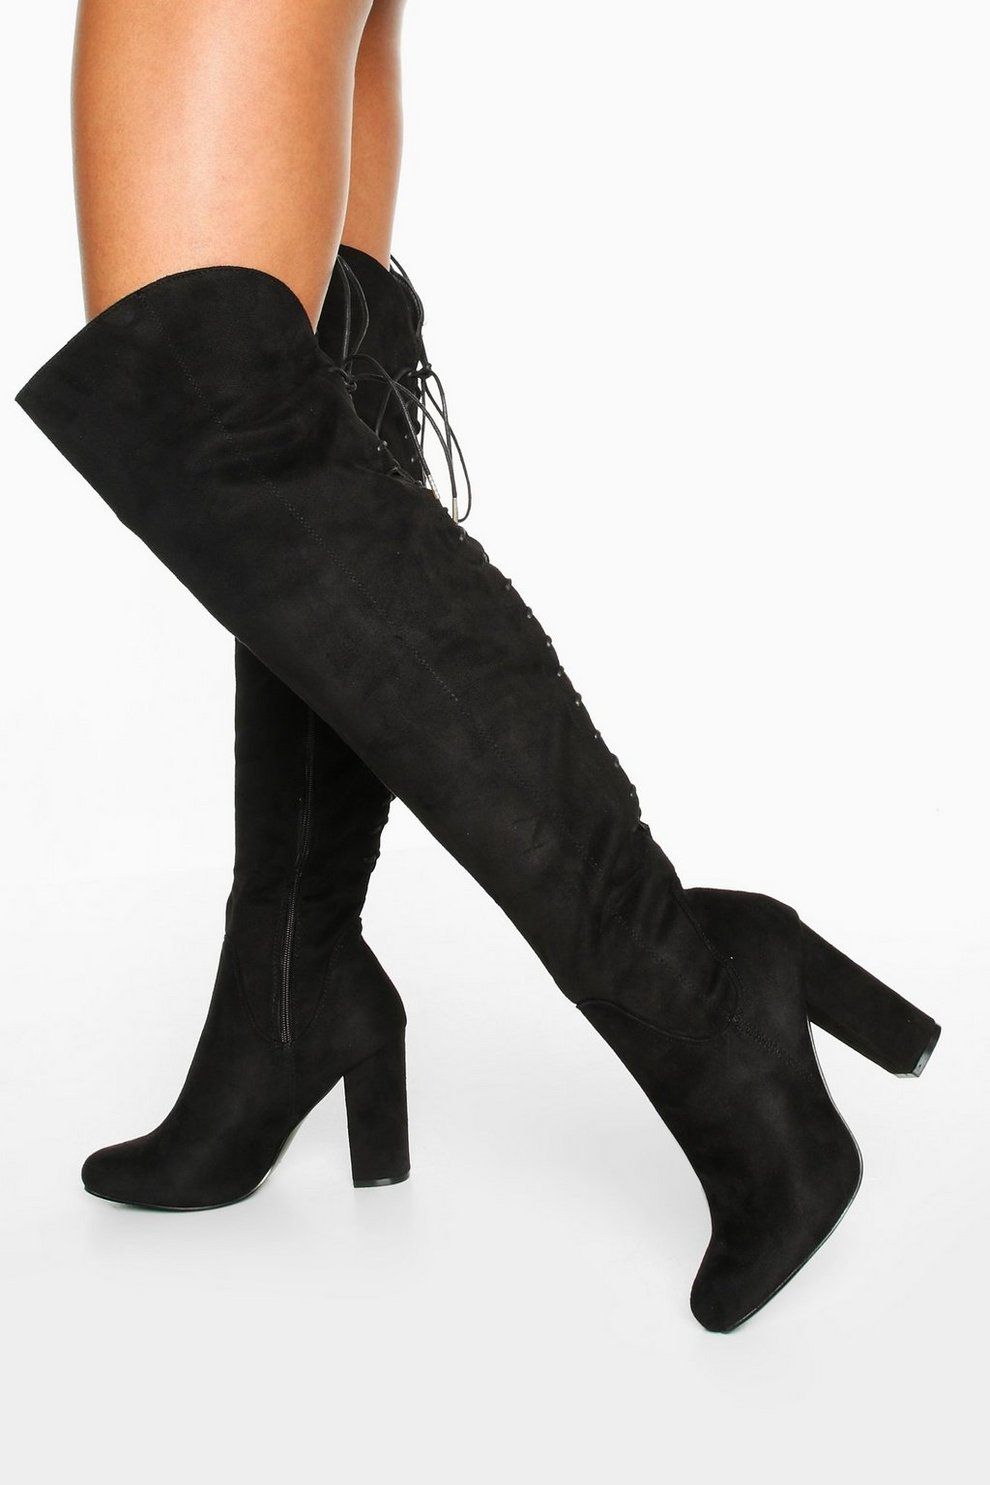 b1b40a56765 Lace Back Block Heel Over The Knee Boots